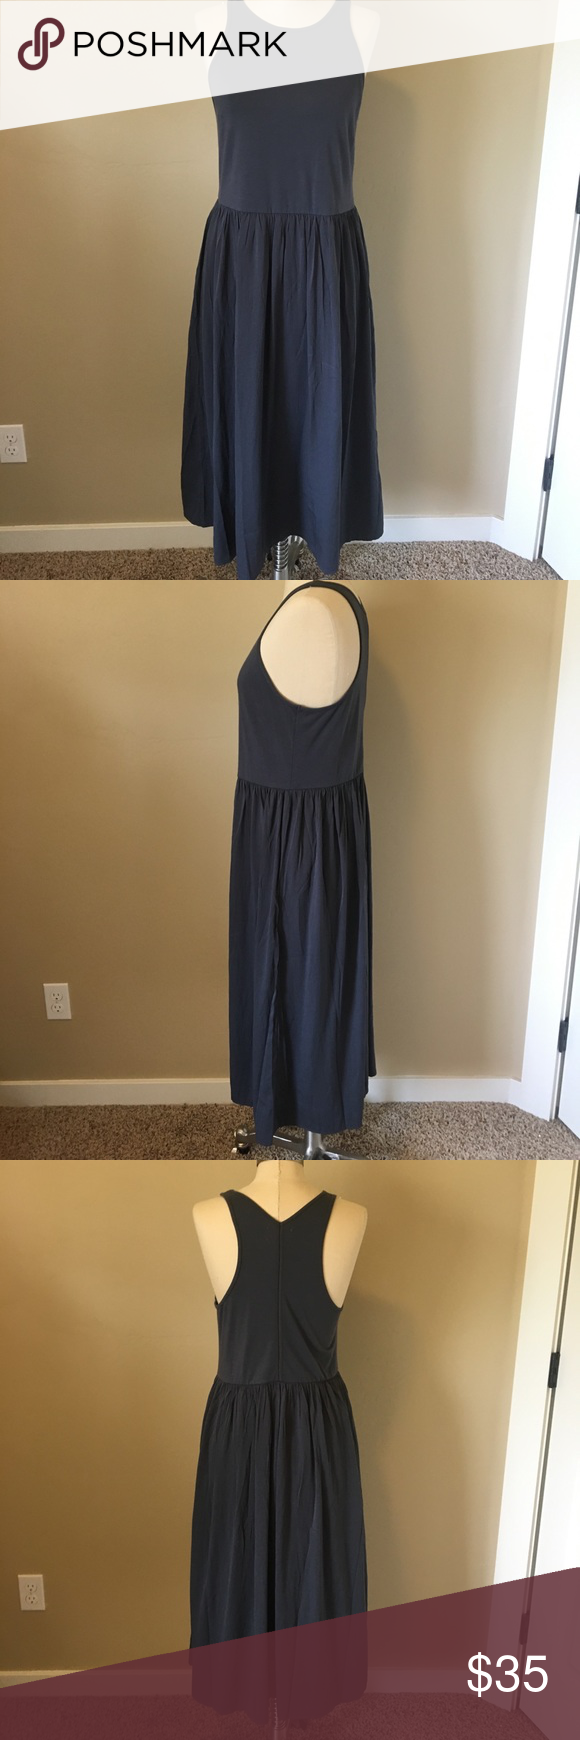 """Lou & Grey Mediamix Midi Dress Suedes jersey bodice, airy woven crinkle skirt. Round neck, Racerback, 28.5"""" from natural waist. Lou & Grey Dresses"""